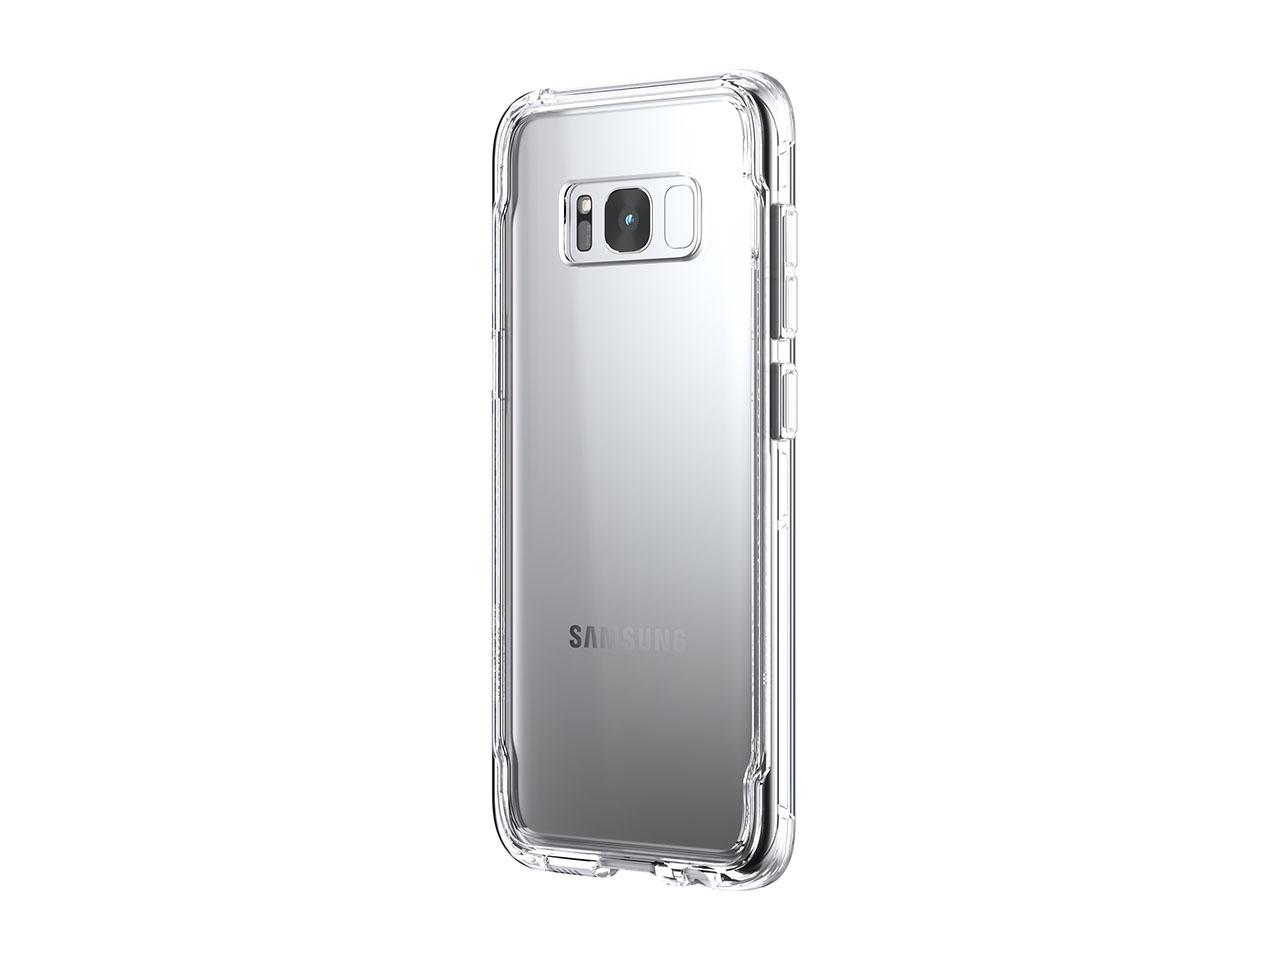 Samsung Galaxy S8 Protective See Through Case